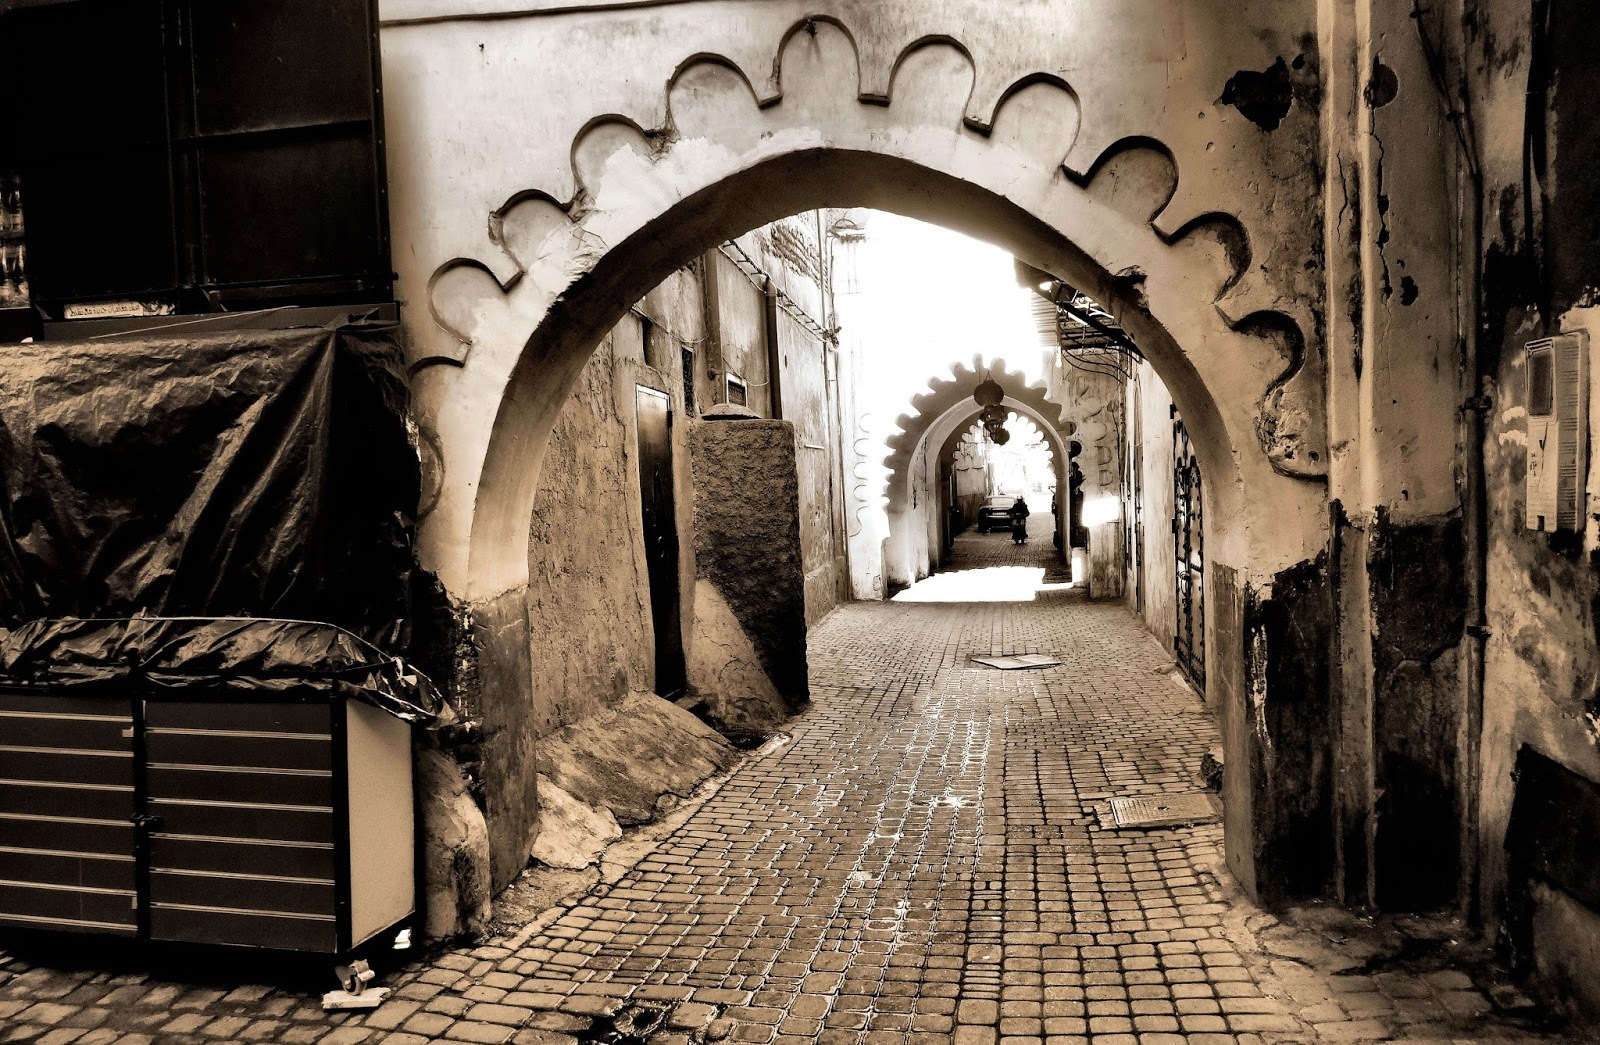 Inspiration #349 - Little street in Morocco by lonysd